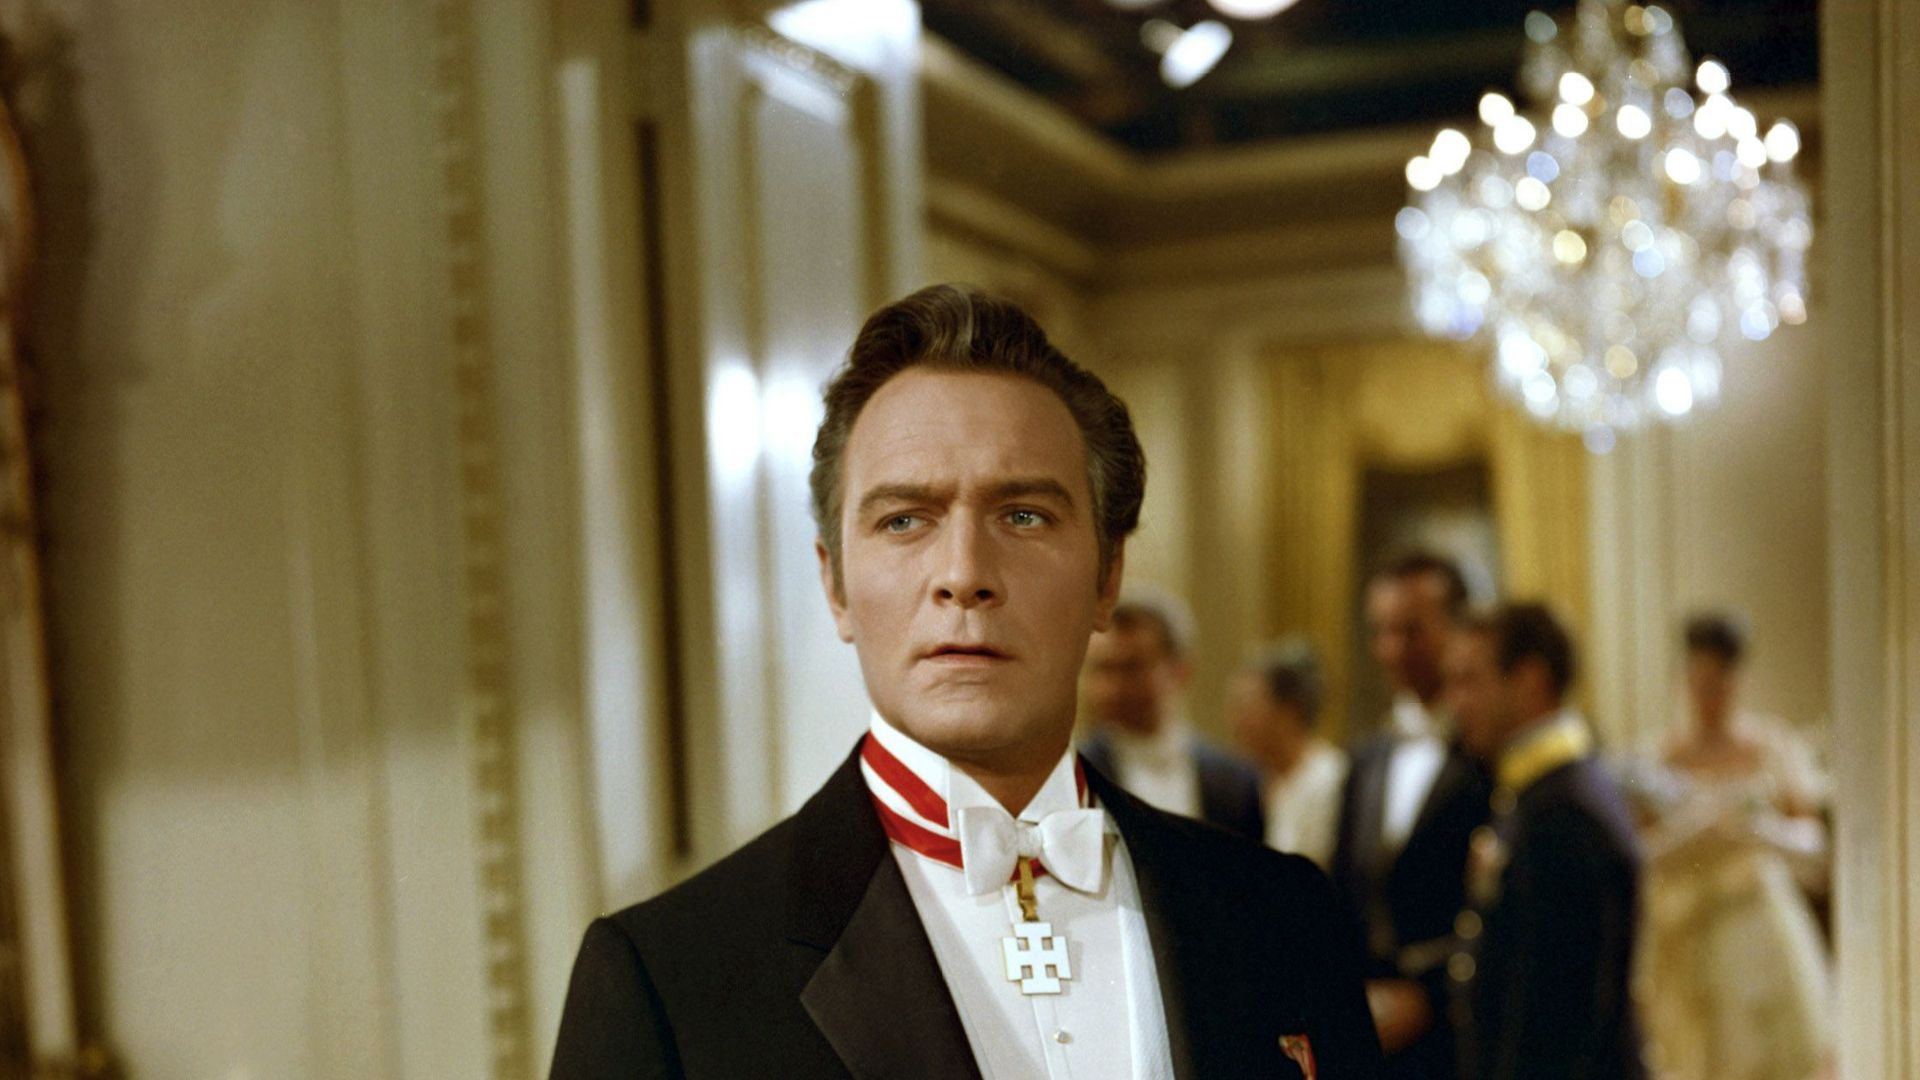 THE SOUND OF MUSIC, Christopher Plummer, 1965.